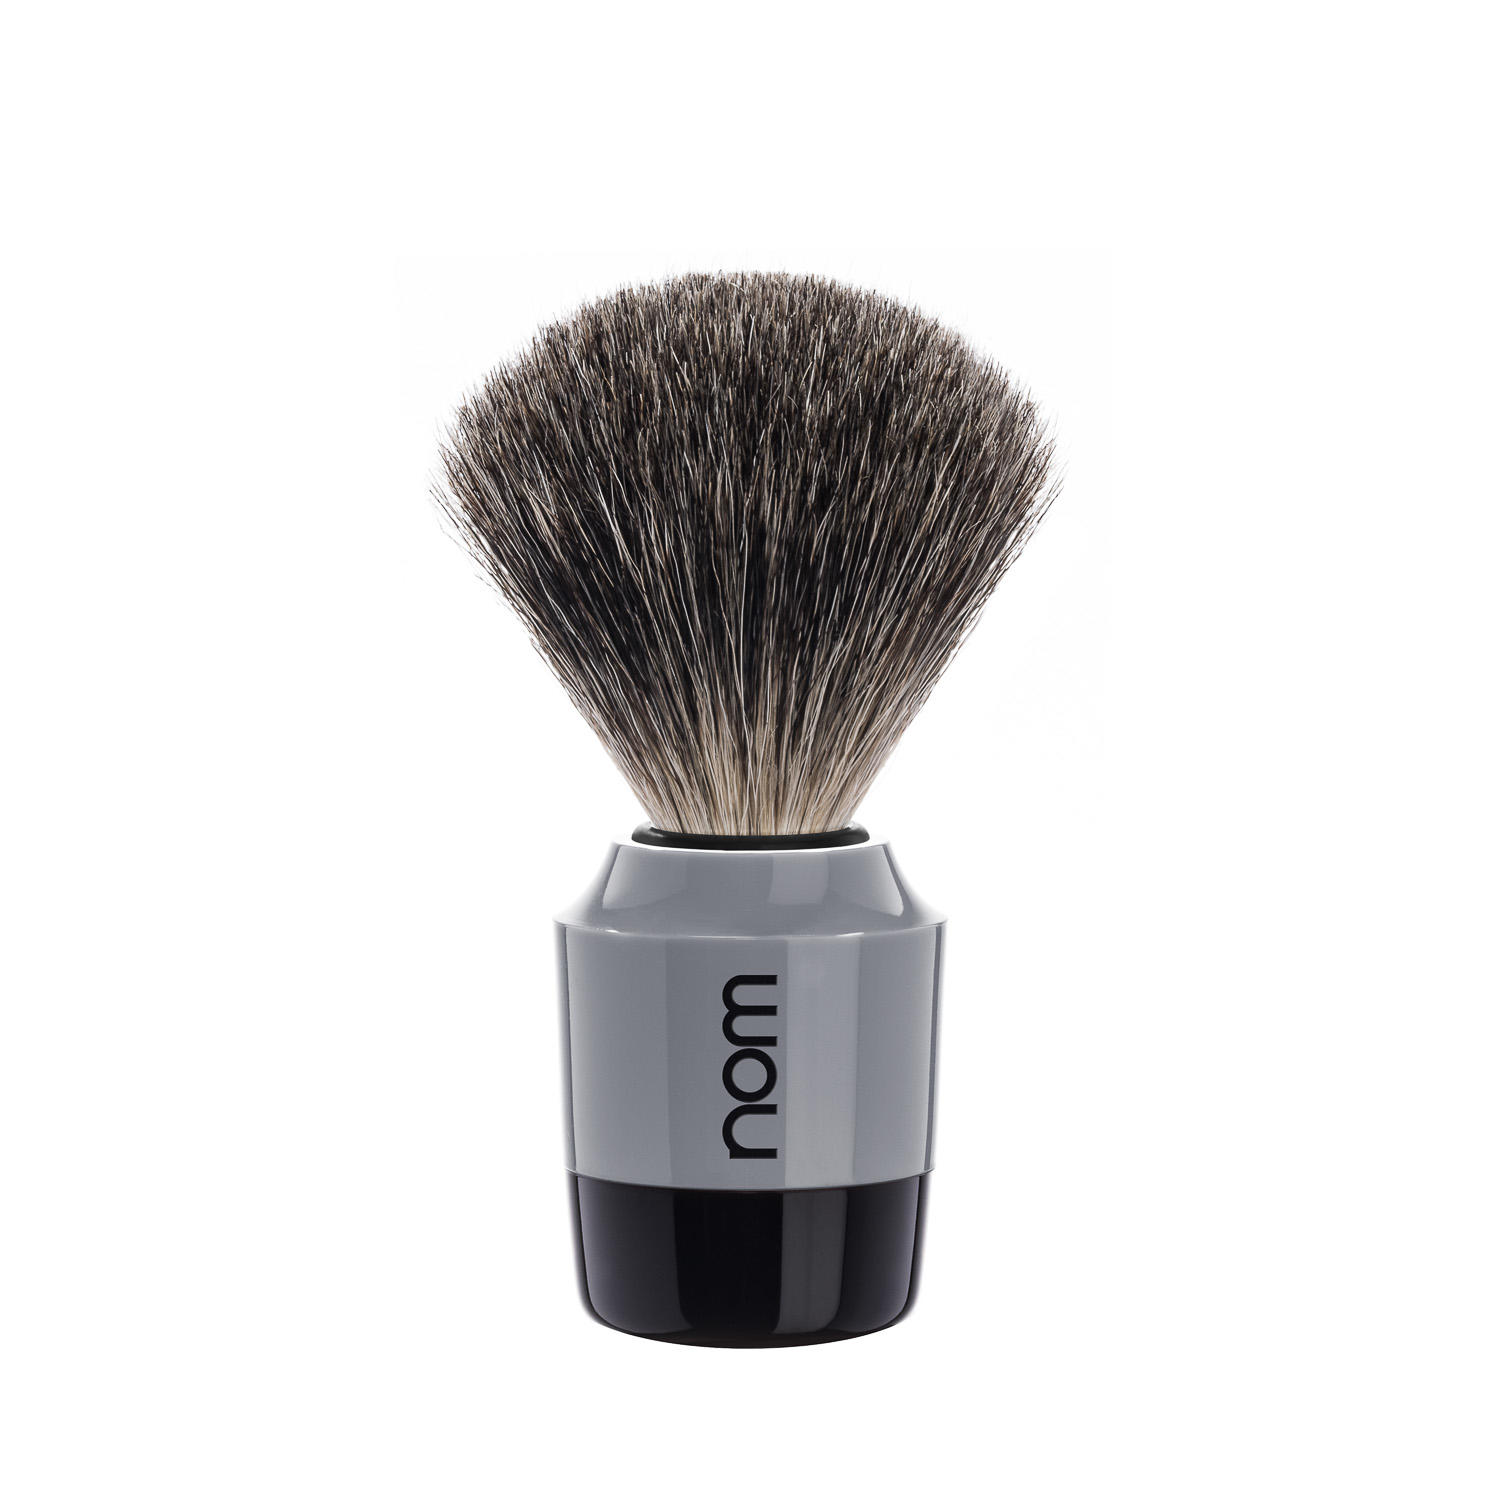 MARTEN81GR NOM, MARTEN in Grey, Pure Badger Shaving Brush